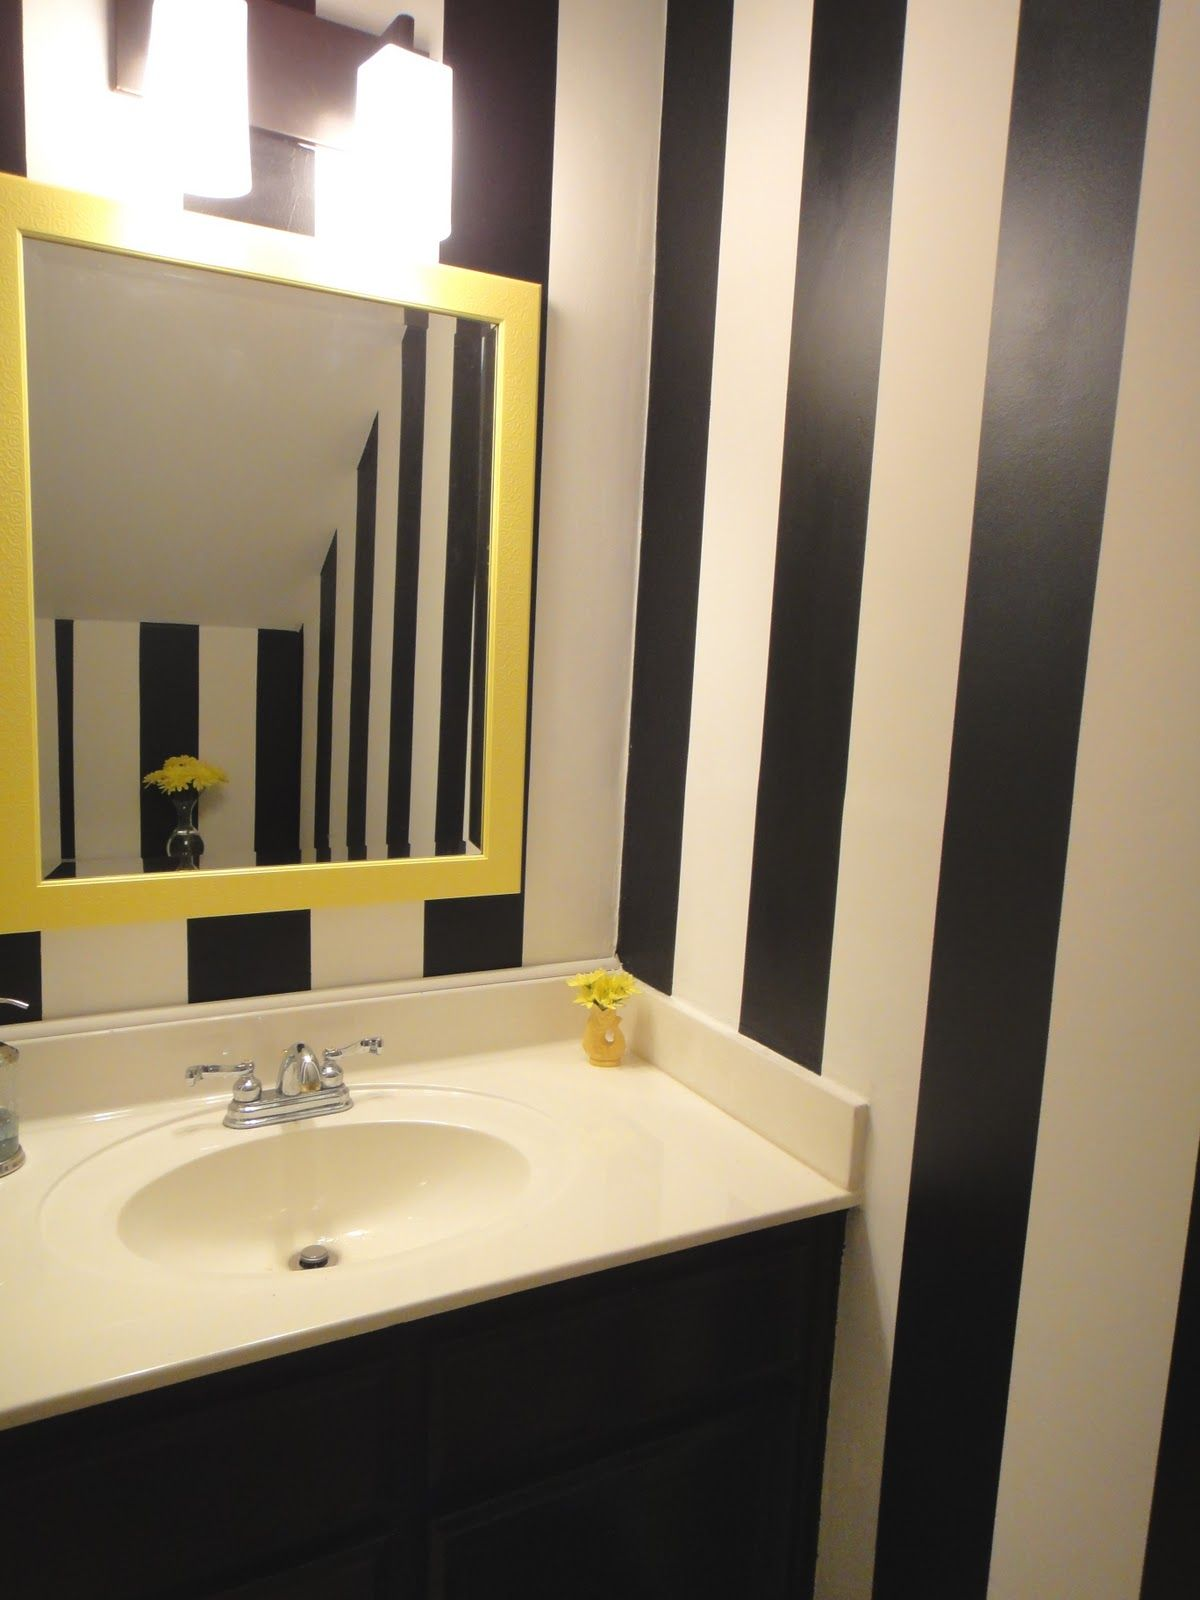 Chic Yellow Square Wall Mount Mirror Frames Over Single White Bowl Washbasin Porcelain Top With Bathroom DecorYellow